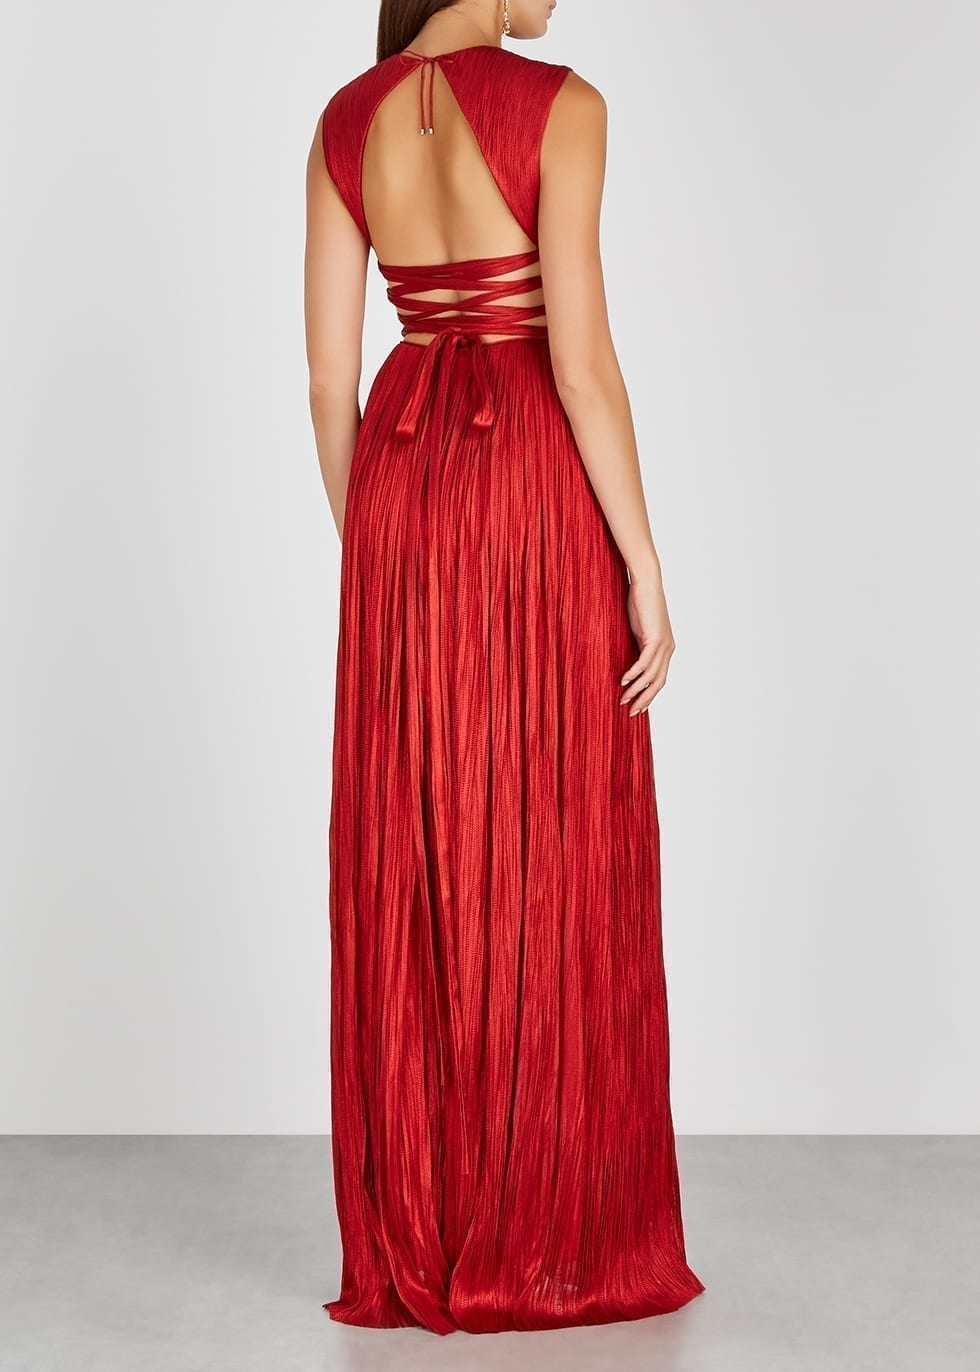 MARIA LUCIA HOHAN Adela Metallic Red Lace-up Silk Gown